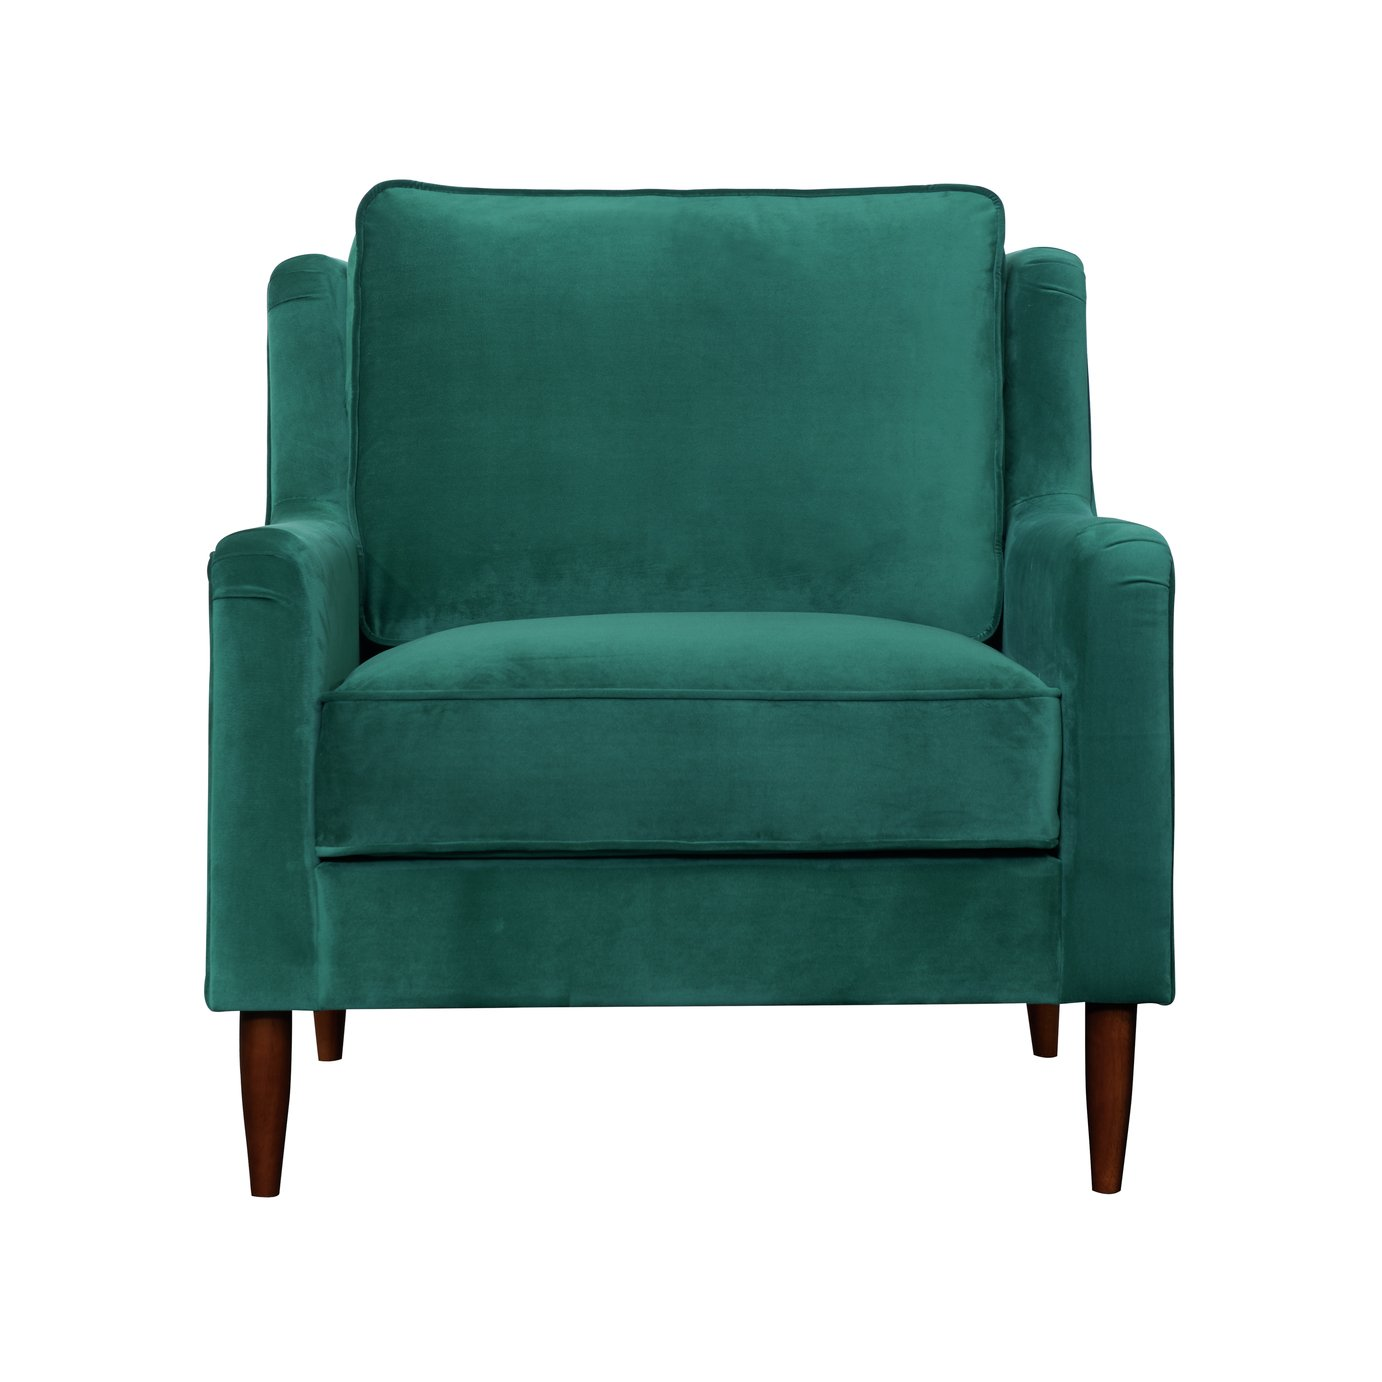 Argos Home Jacob Velvet Armchair - Green